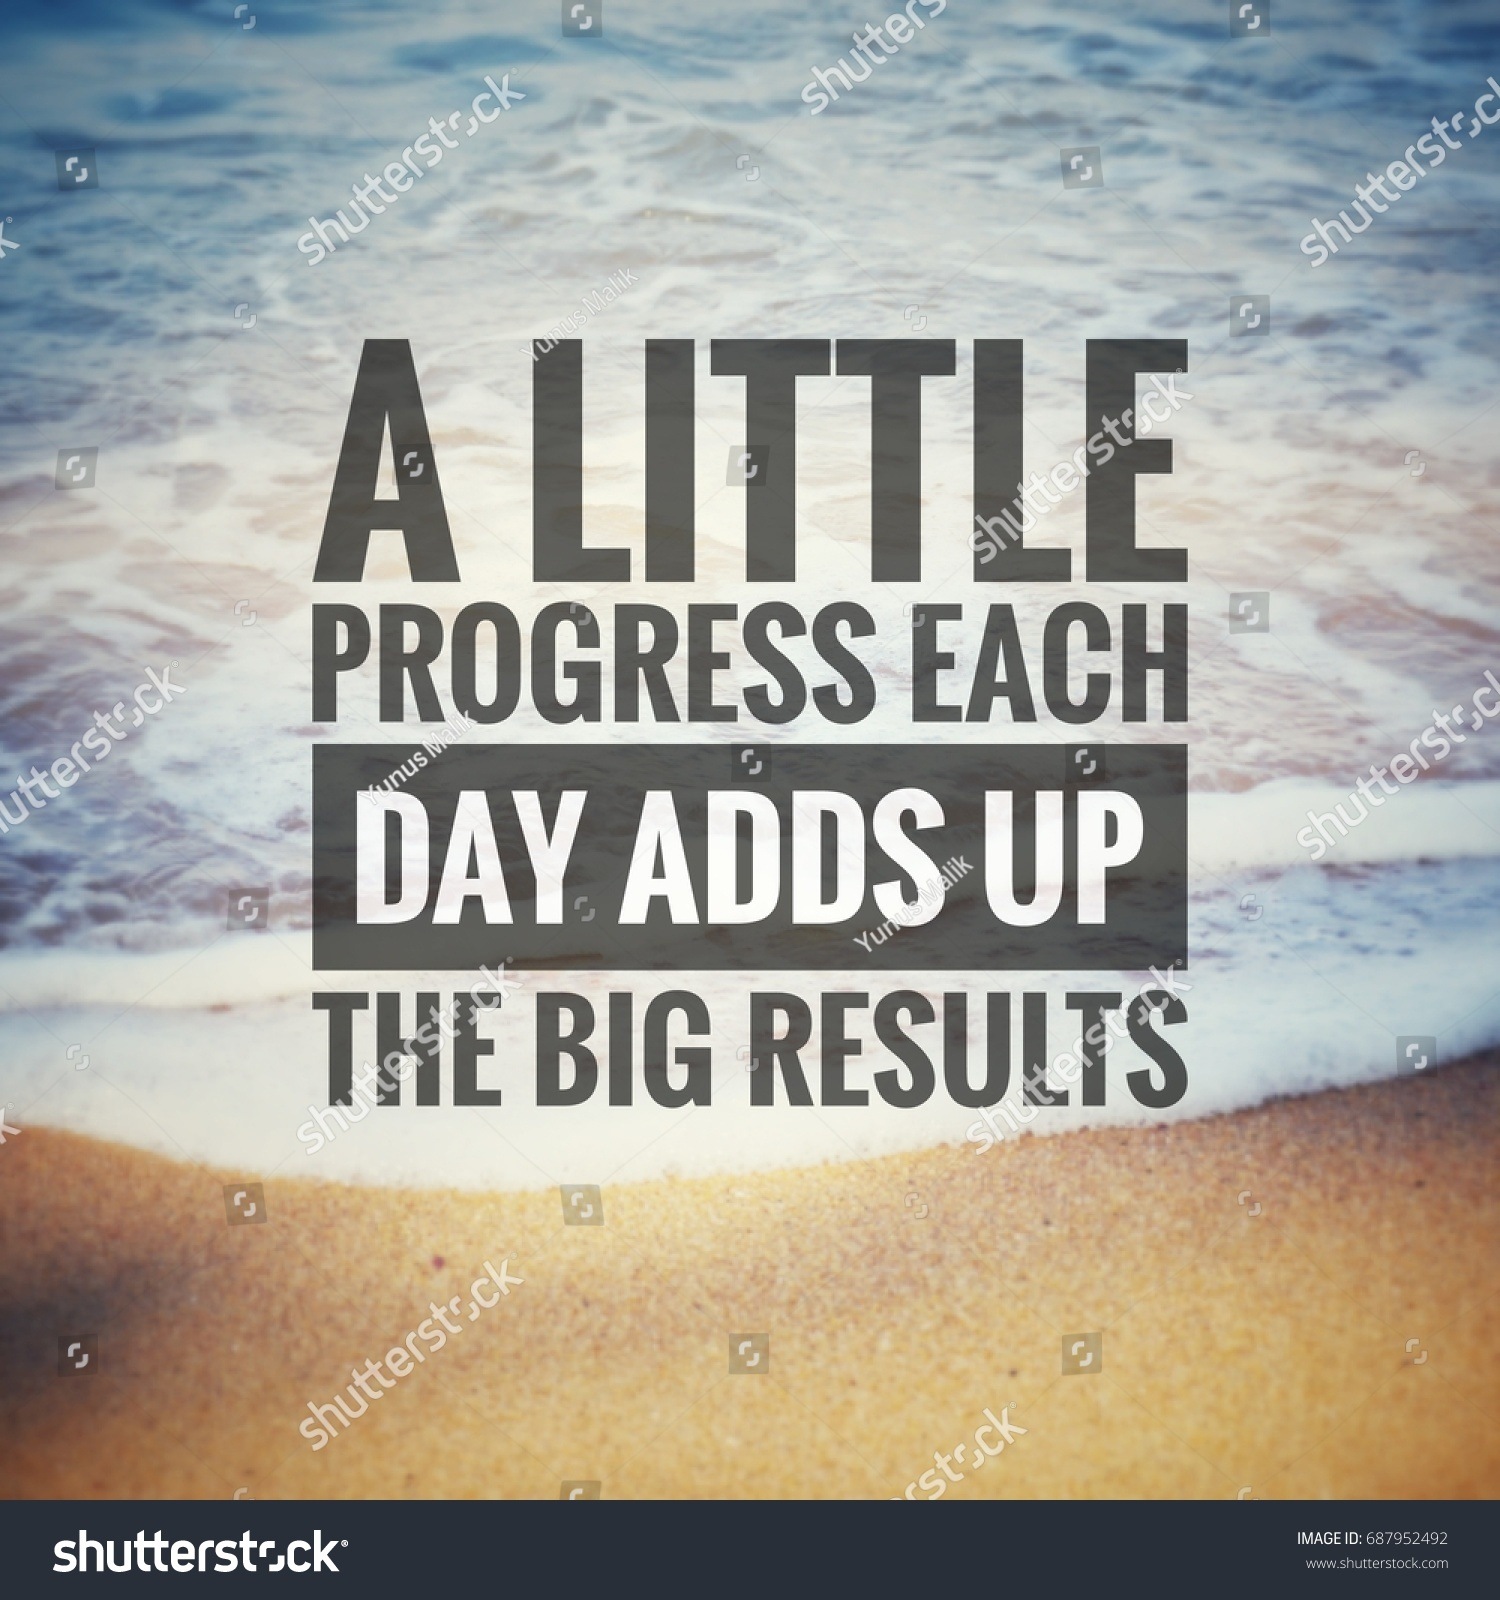 Progress Quotes Inspirational Motivation Quotes Little Progress Each Stock Photo .